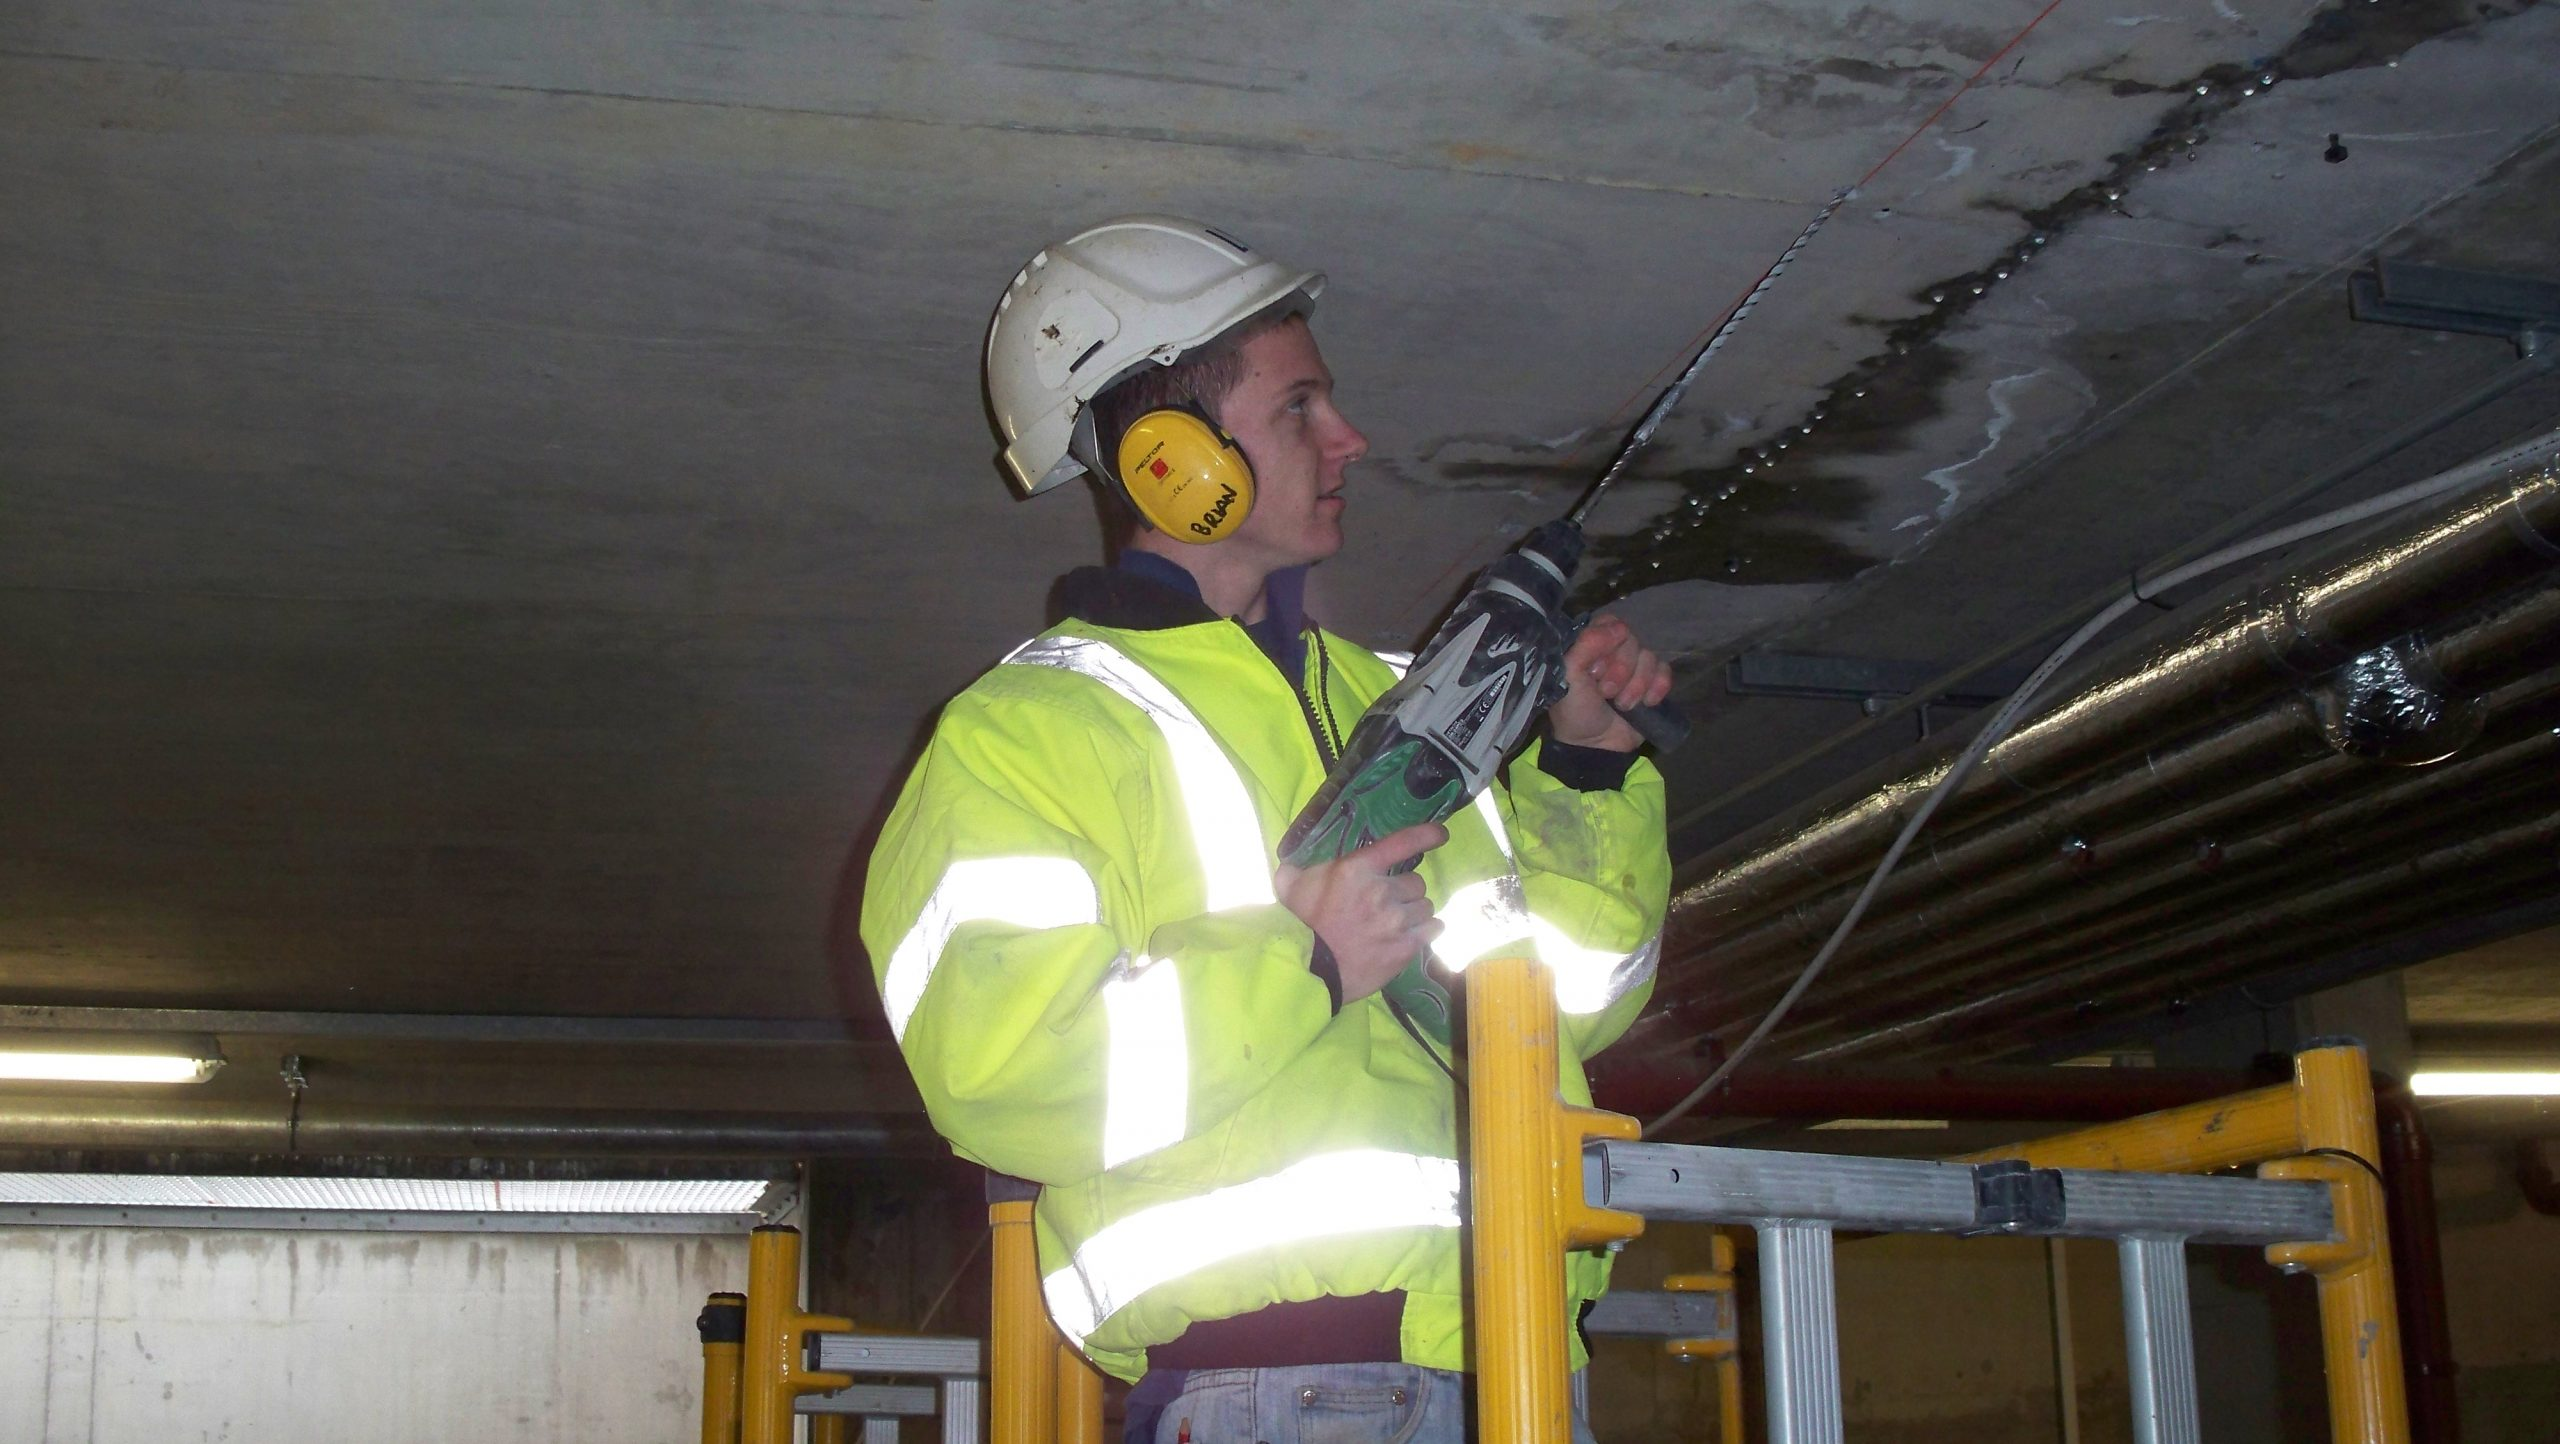 MacLennan technician drilling for resin injection installation